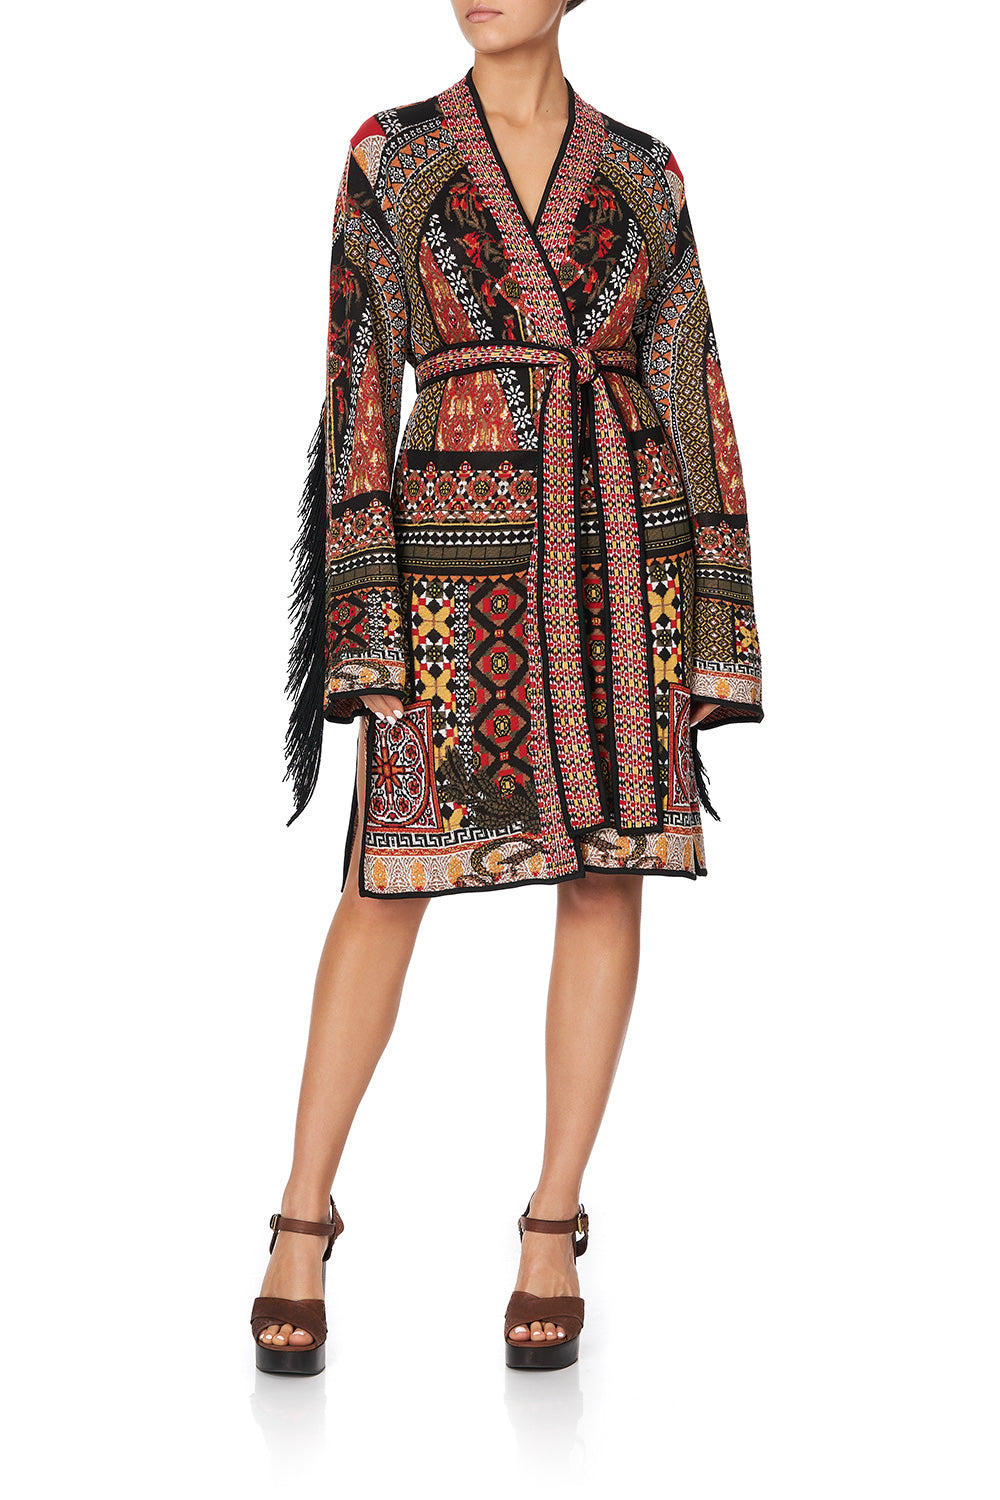 KNIT JACQUARD JACKET WITH CROCHET INSERTS PAVED IN PAISLEY